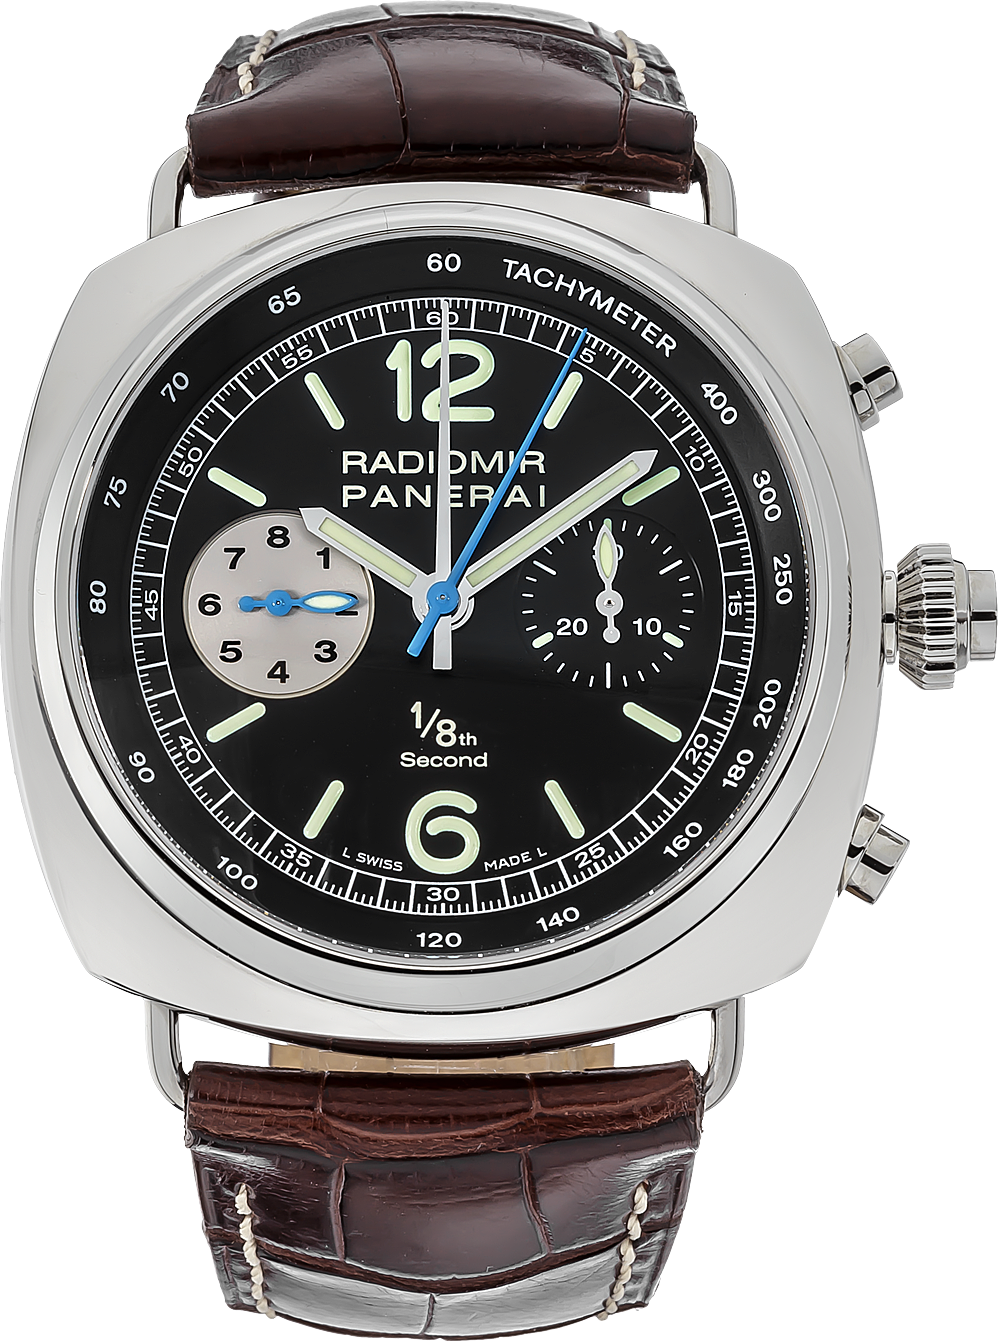 Panerai Radiomir One/Eight Second Chronograph PAM 246